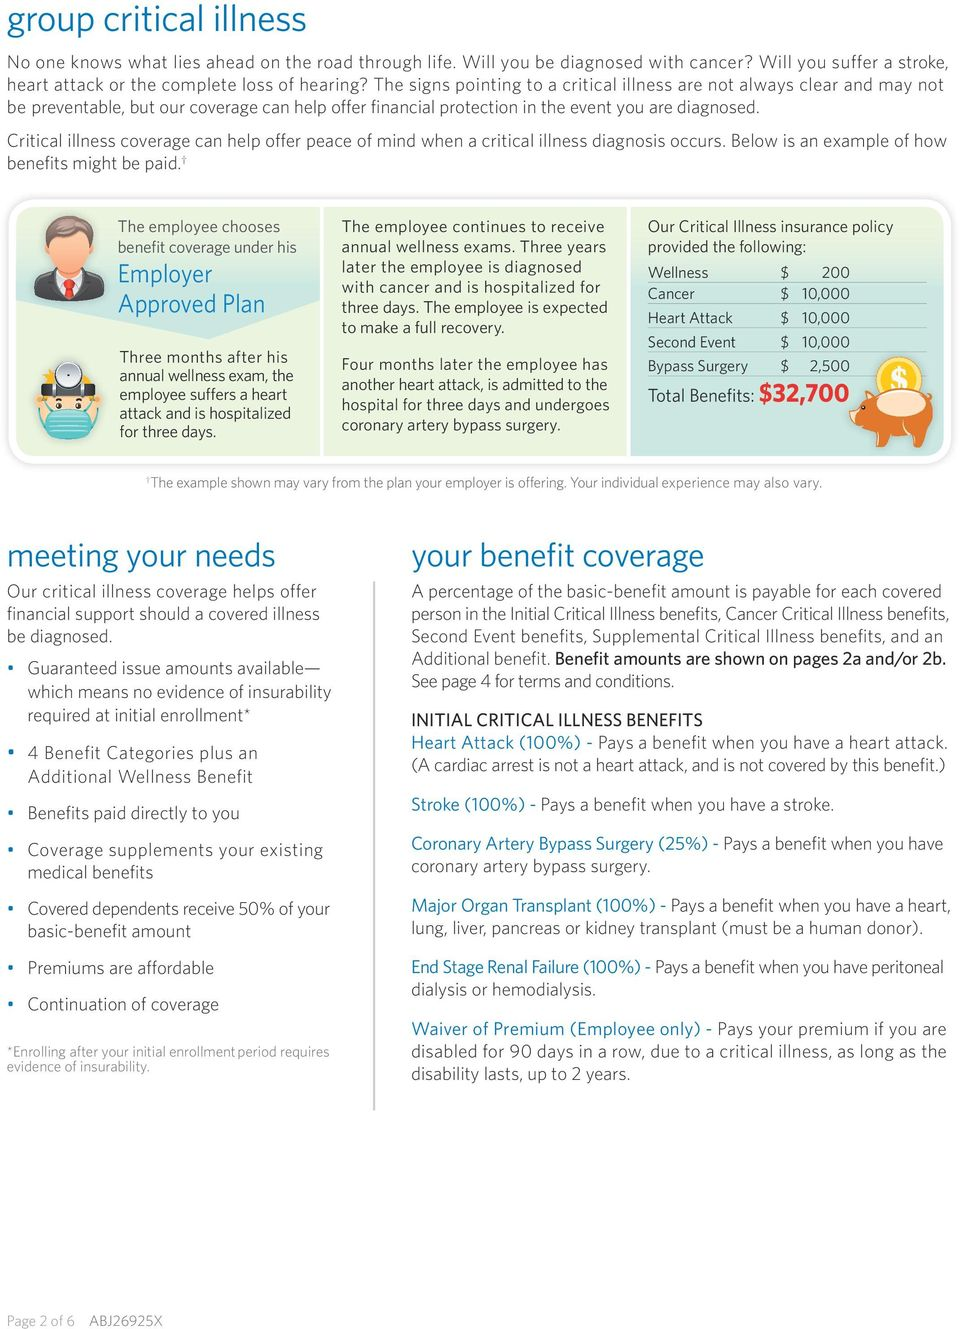 Critical illness coverage can help offer peace of mind when a critical illness diagnosis occurs. Below is an example of how benefits might be paid.